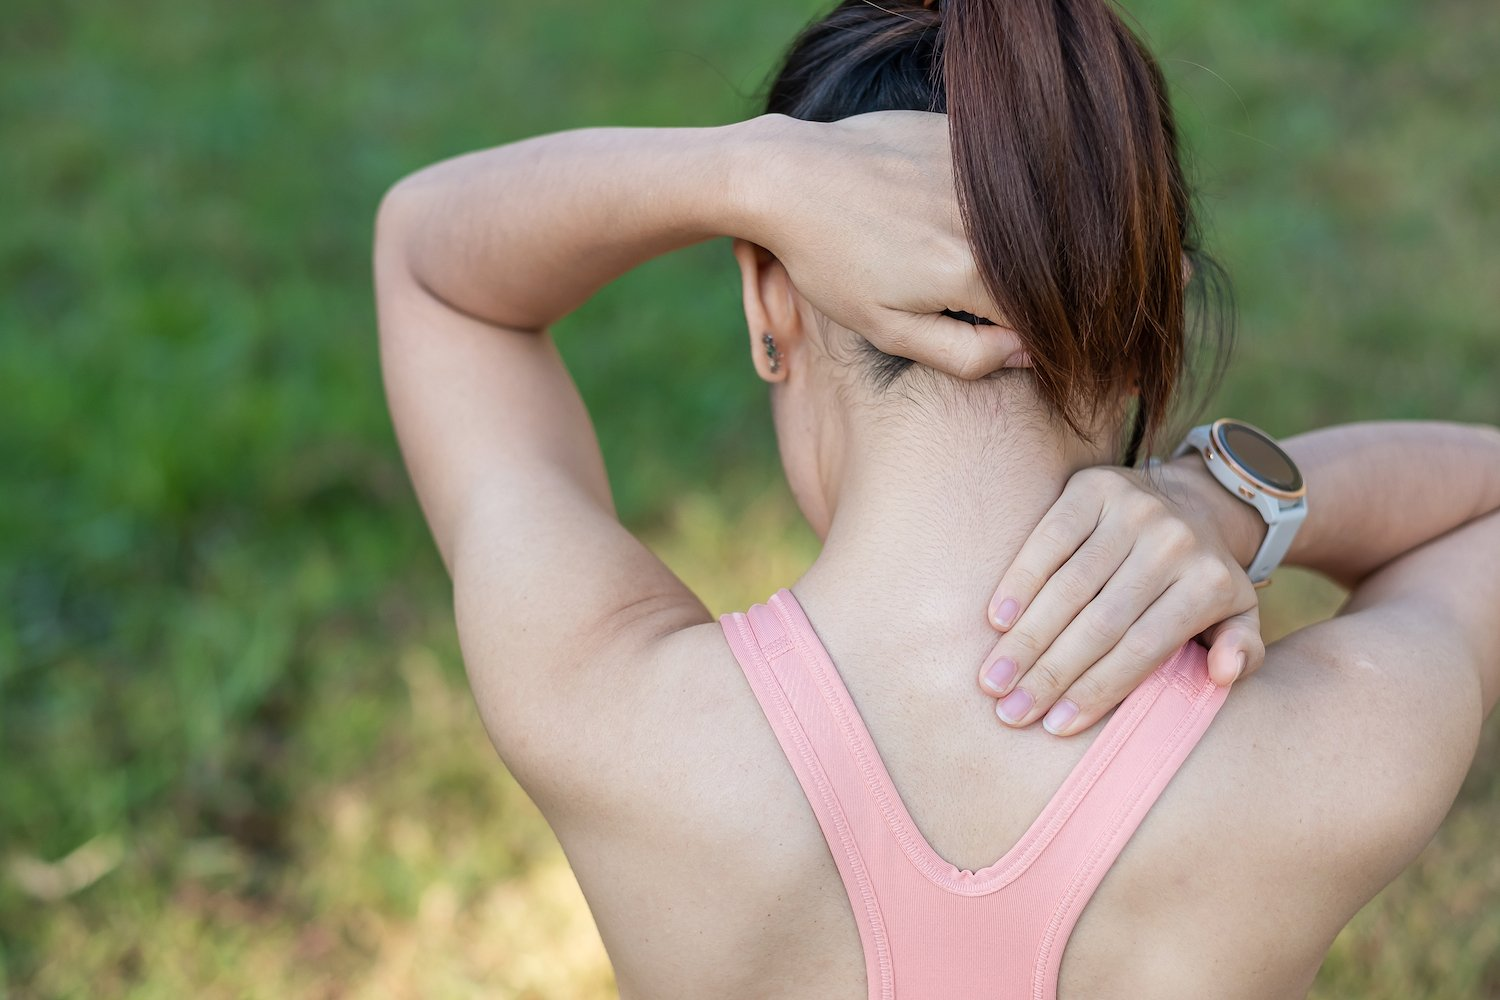 young woman holding her neck due to neck pain caused by exercise or overexertion